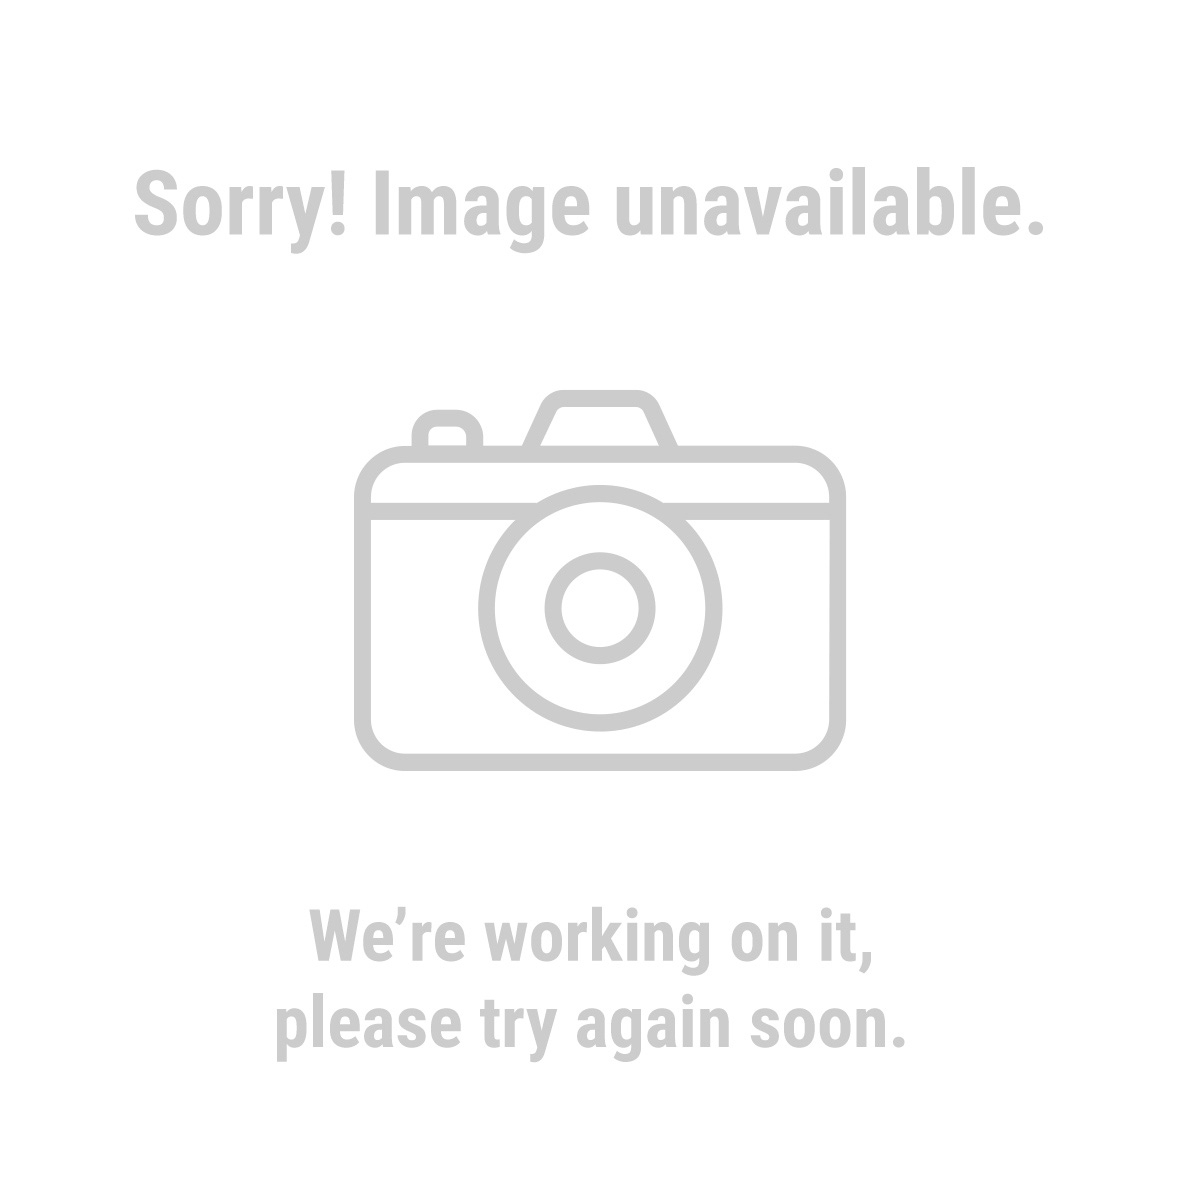 Cen-Tech 37772 11 Function Digital Multimeter with Audible Continuity